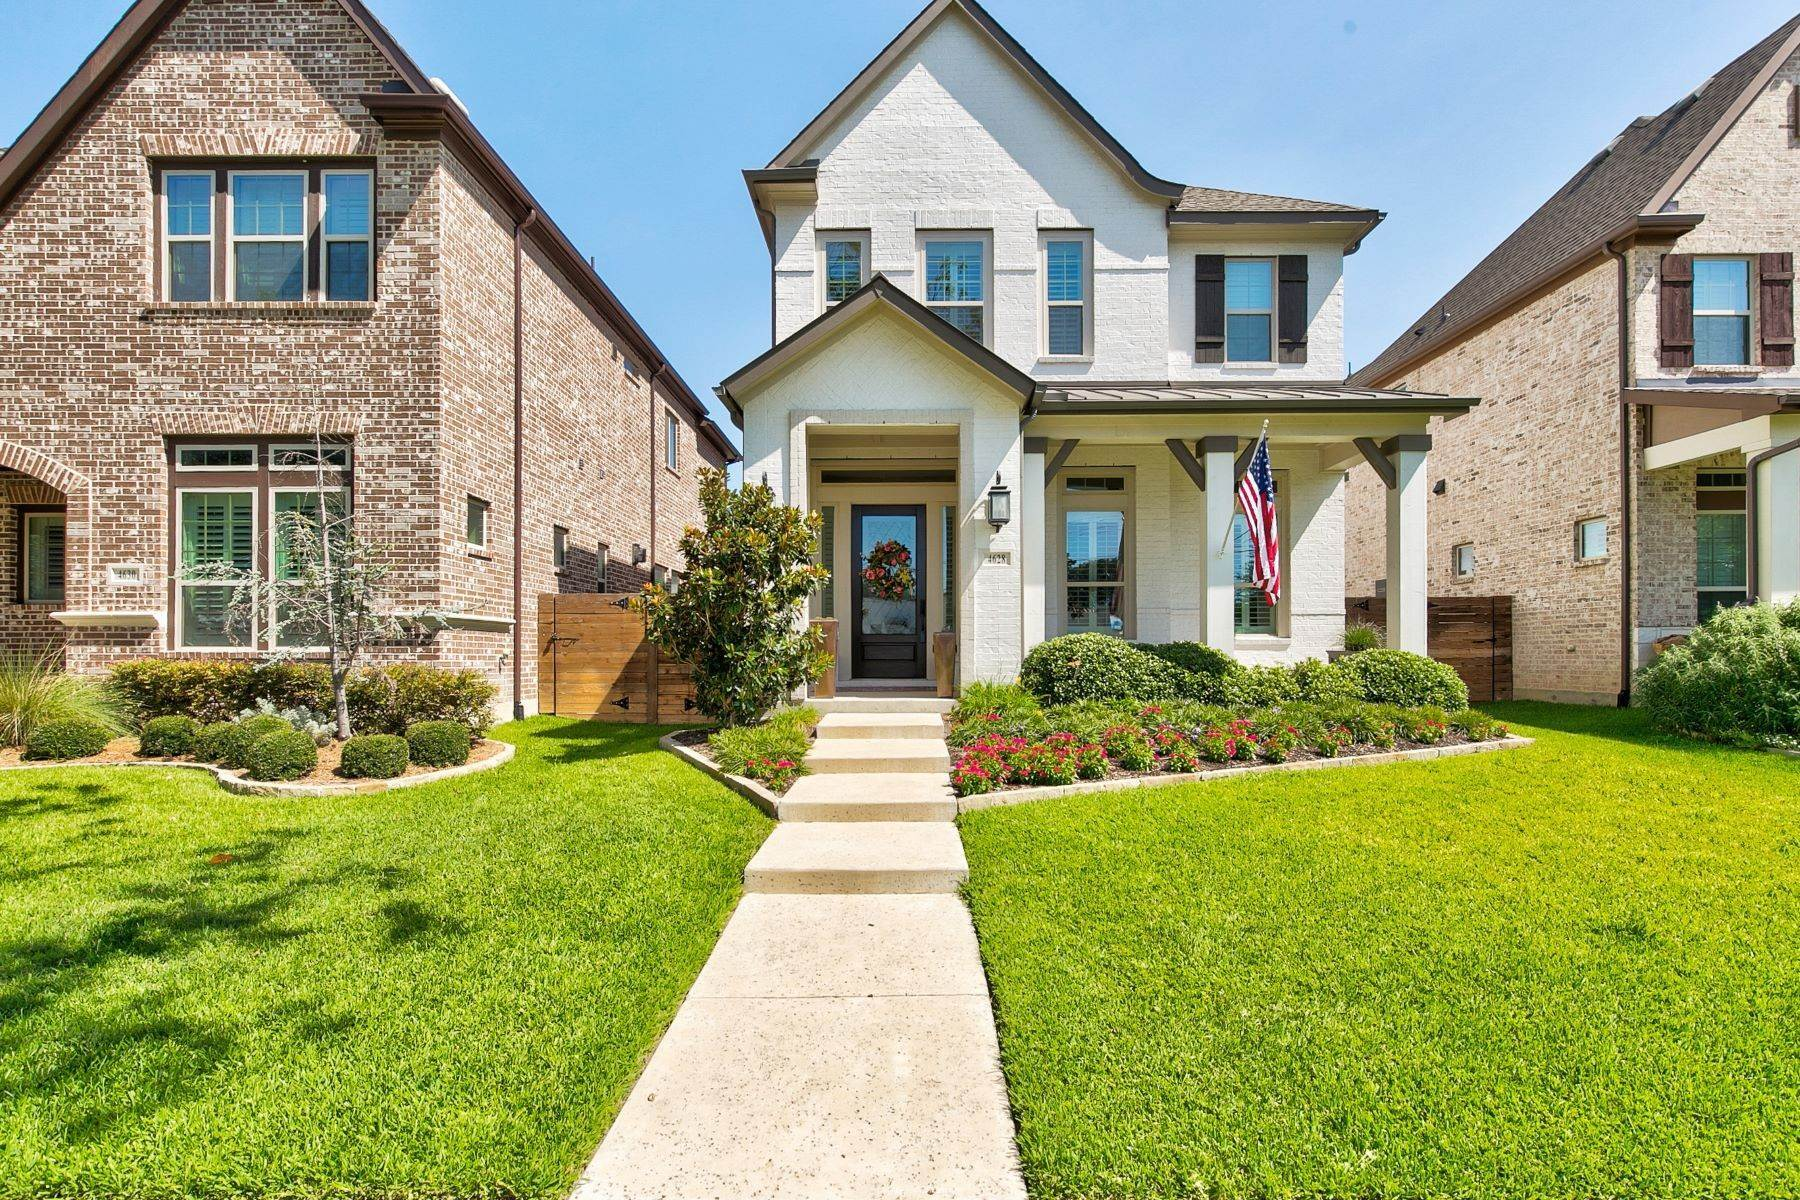 Single Family Homes for Sale at 4628 Dexter Avenue, Fort Worth, TX, 76107 4628 Dexter Avenue Fort Worth, Texas 76107 United States